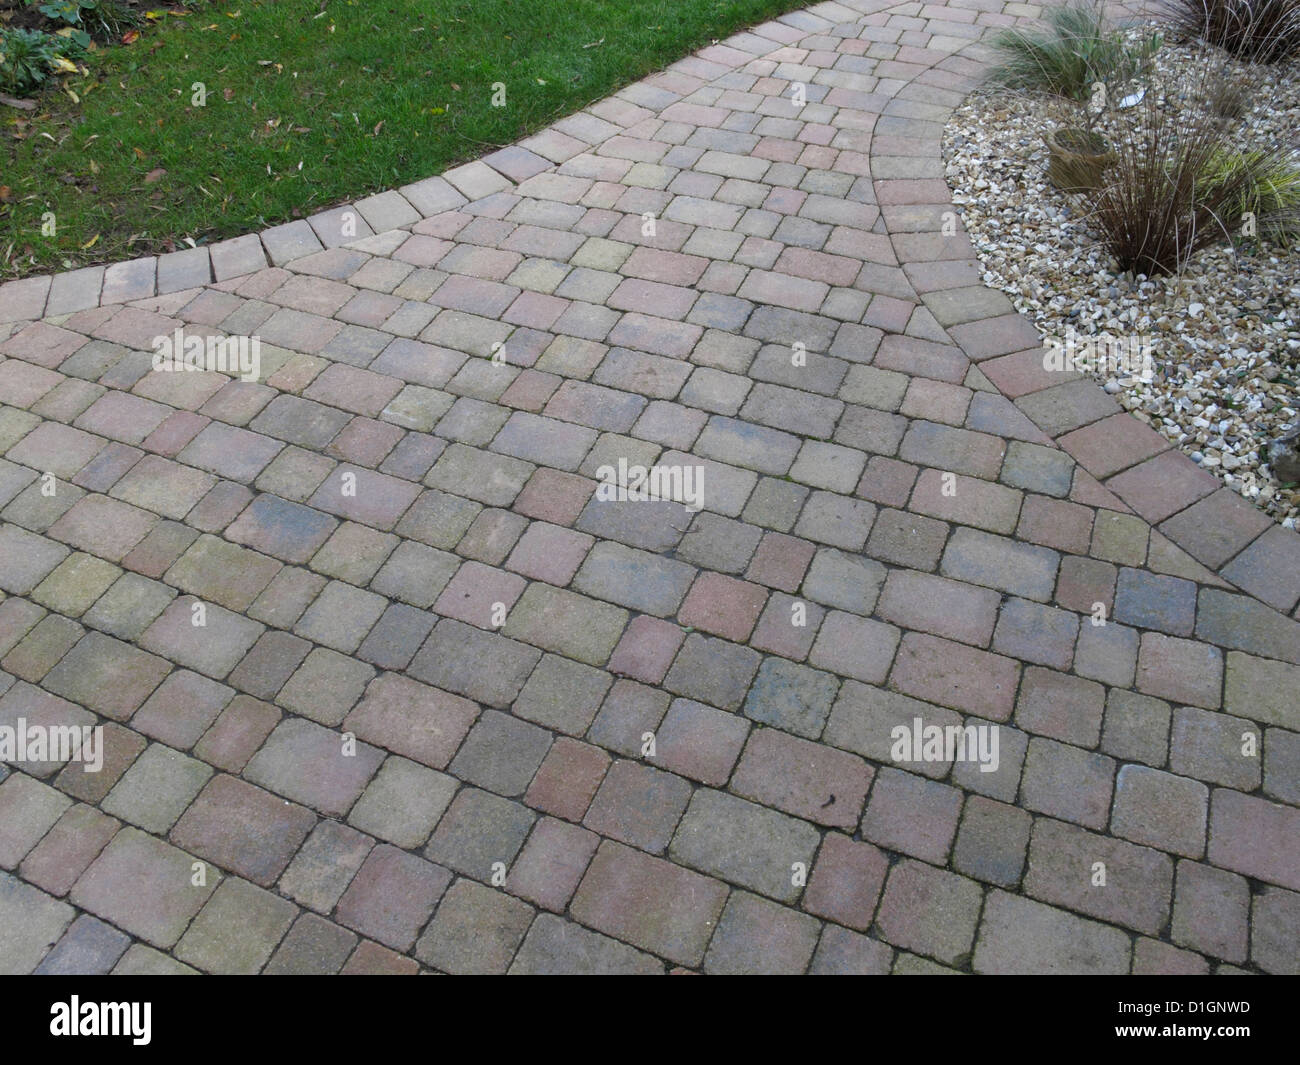 Rustic Red Brick Patio Block Paving In UK Garden With Porous Joints Acting  As Sustainable Drainage System Surface Water Soakaway